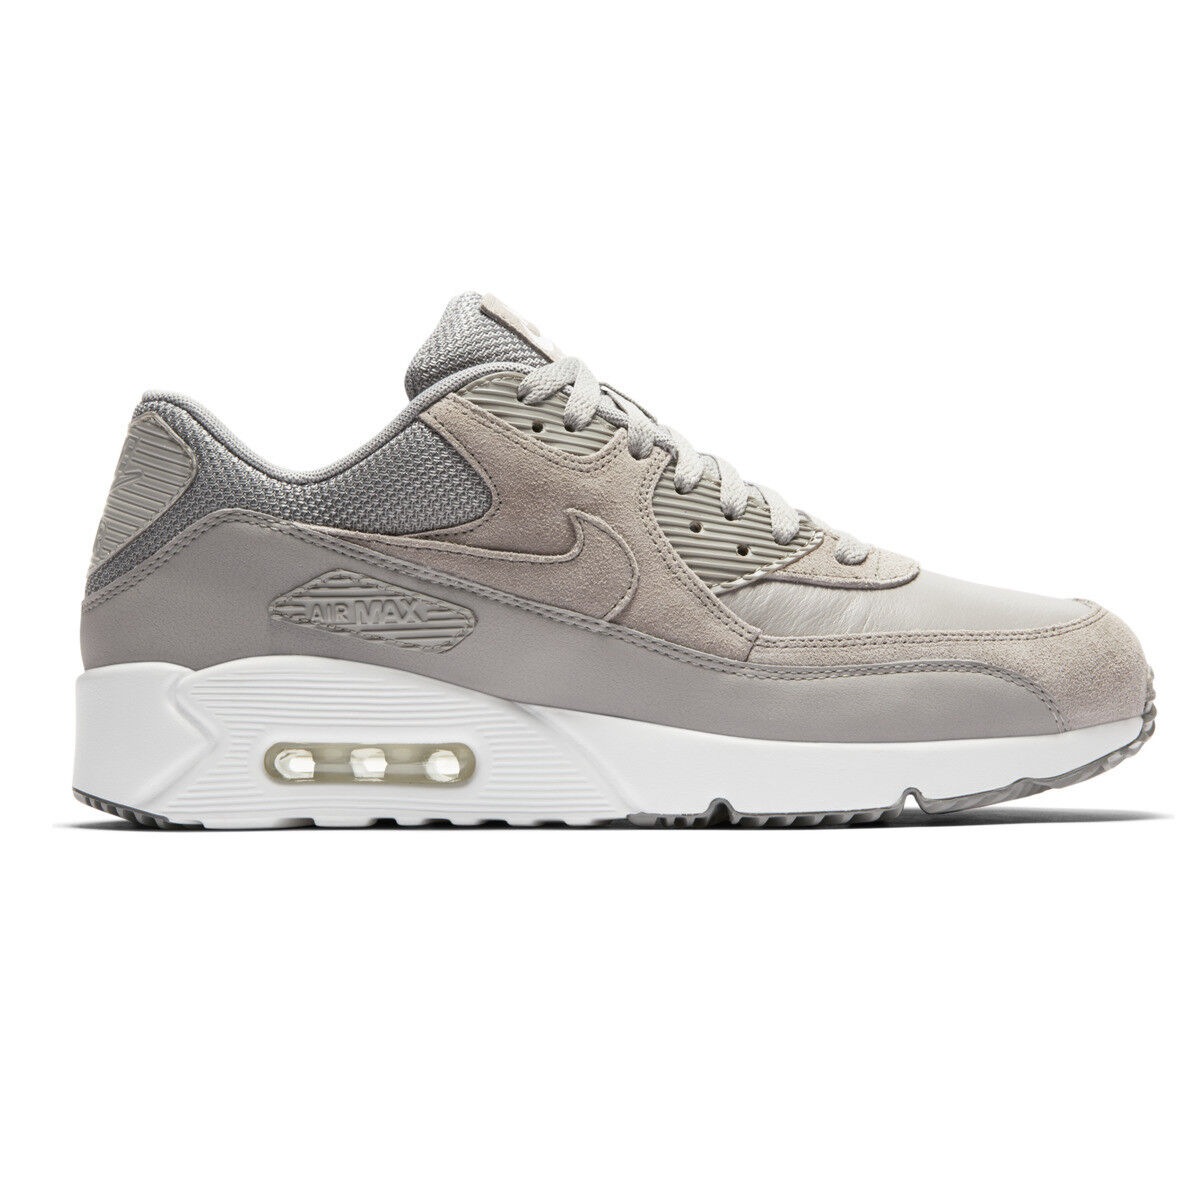 buy popular b58f5 43885 Nike Air Max 90 Ultra 2.0 Ltr Leather Dust White Grey Men Shoes ...